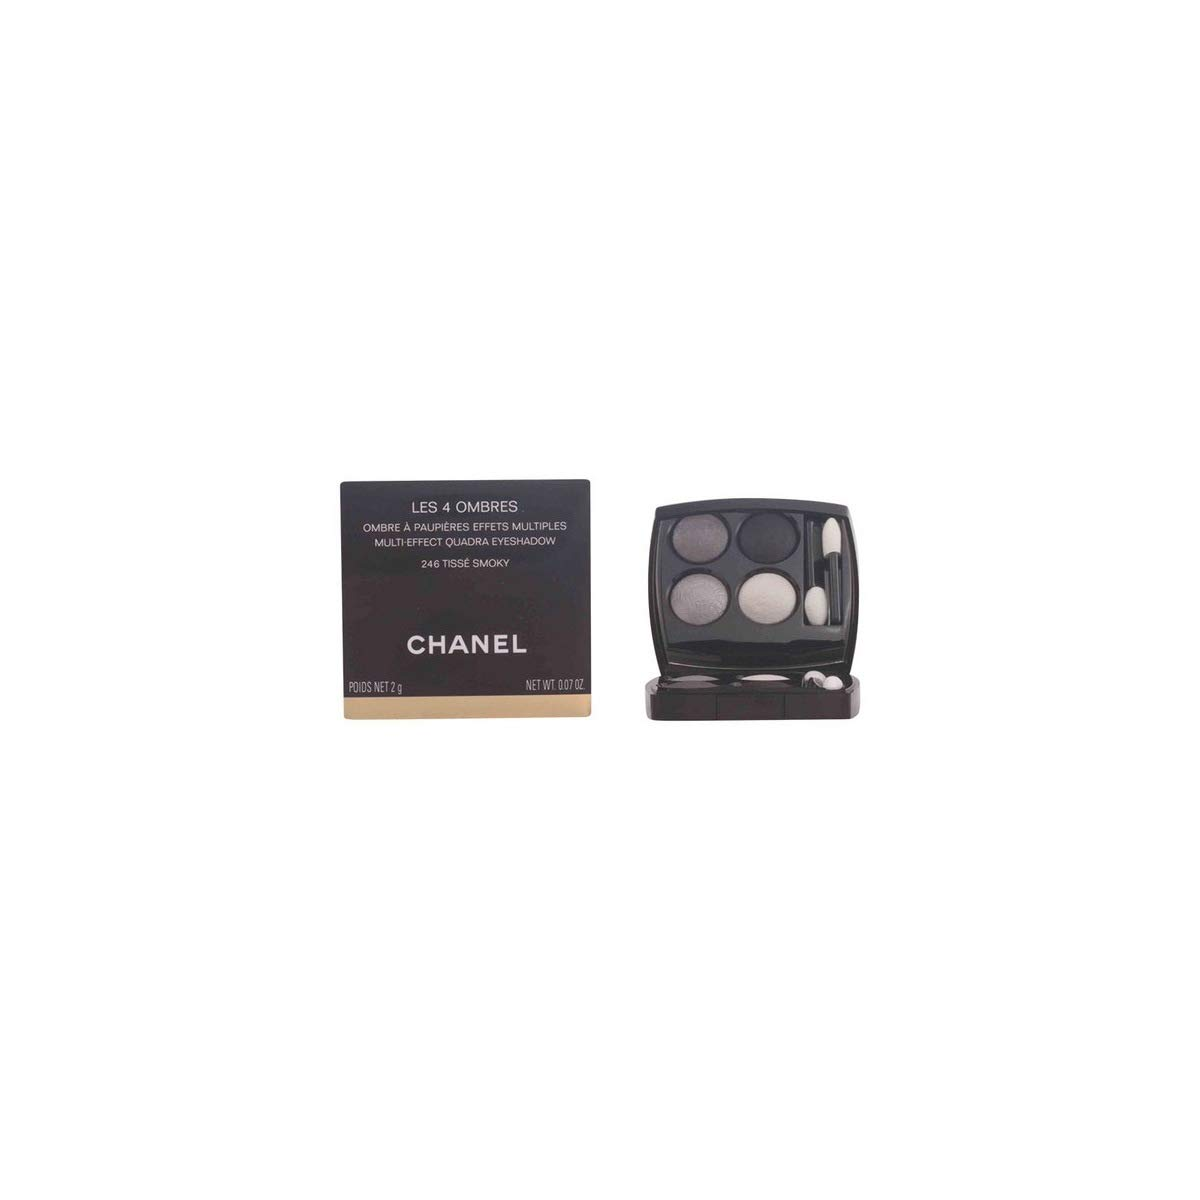 Chanel Les 4 Ombres #334-Modern Glamour 2 Gr - 2 ml: Amazon.es